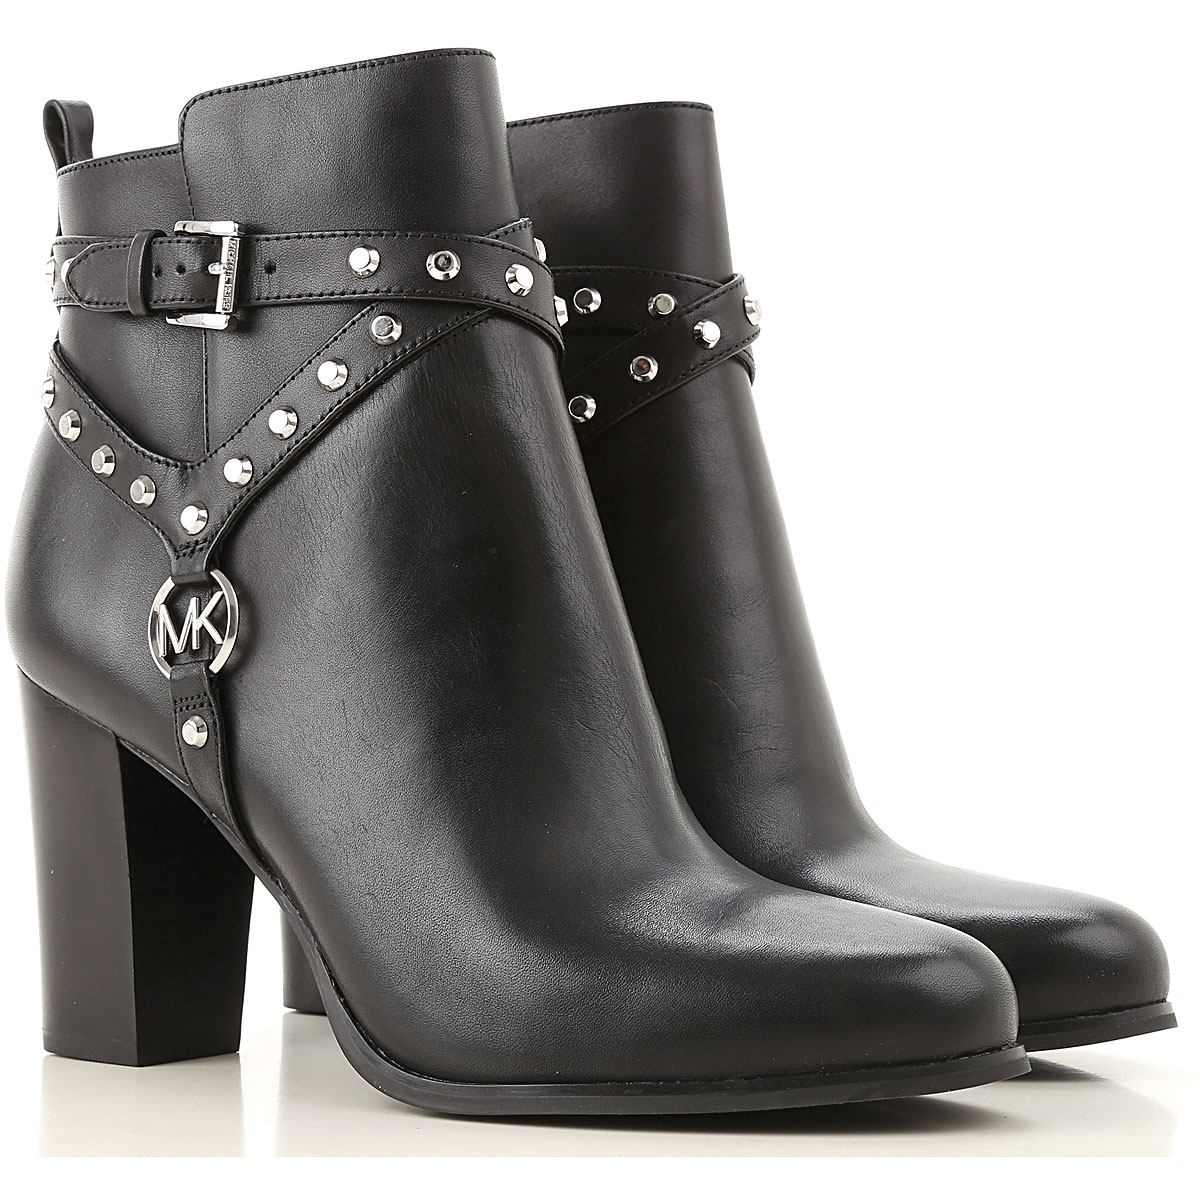 Michael Kors Boots for Women, Booties On Sale, Black, Leather, 2019, 10 7 8 9